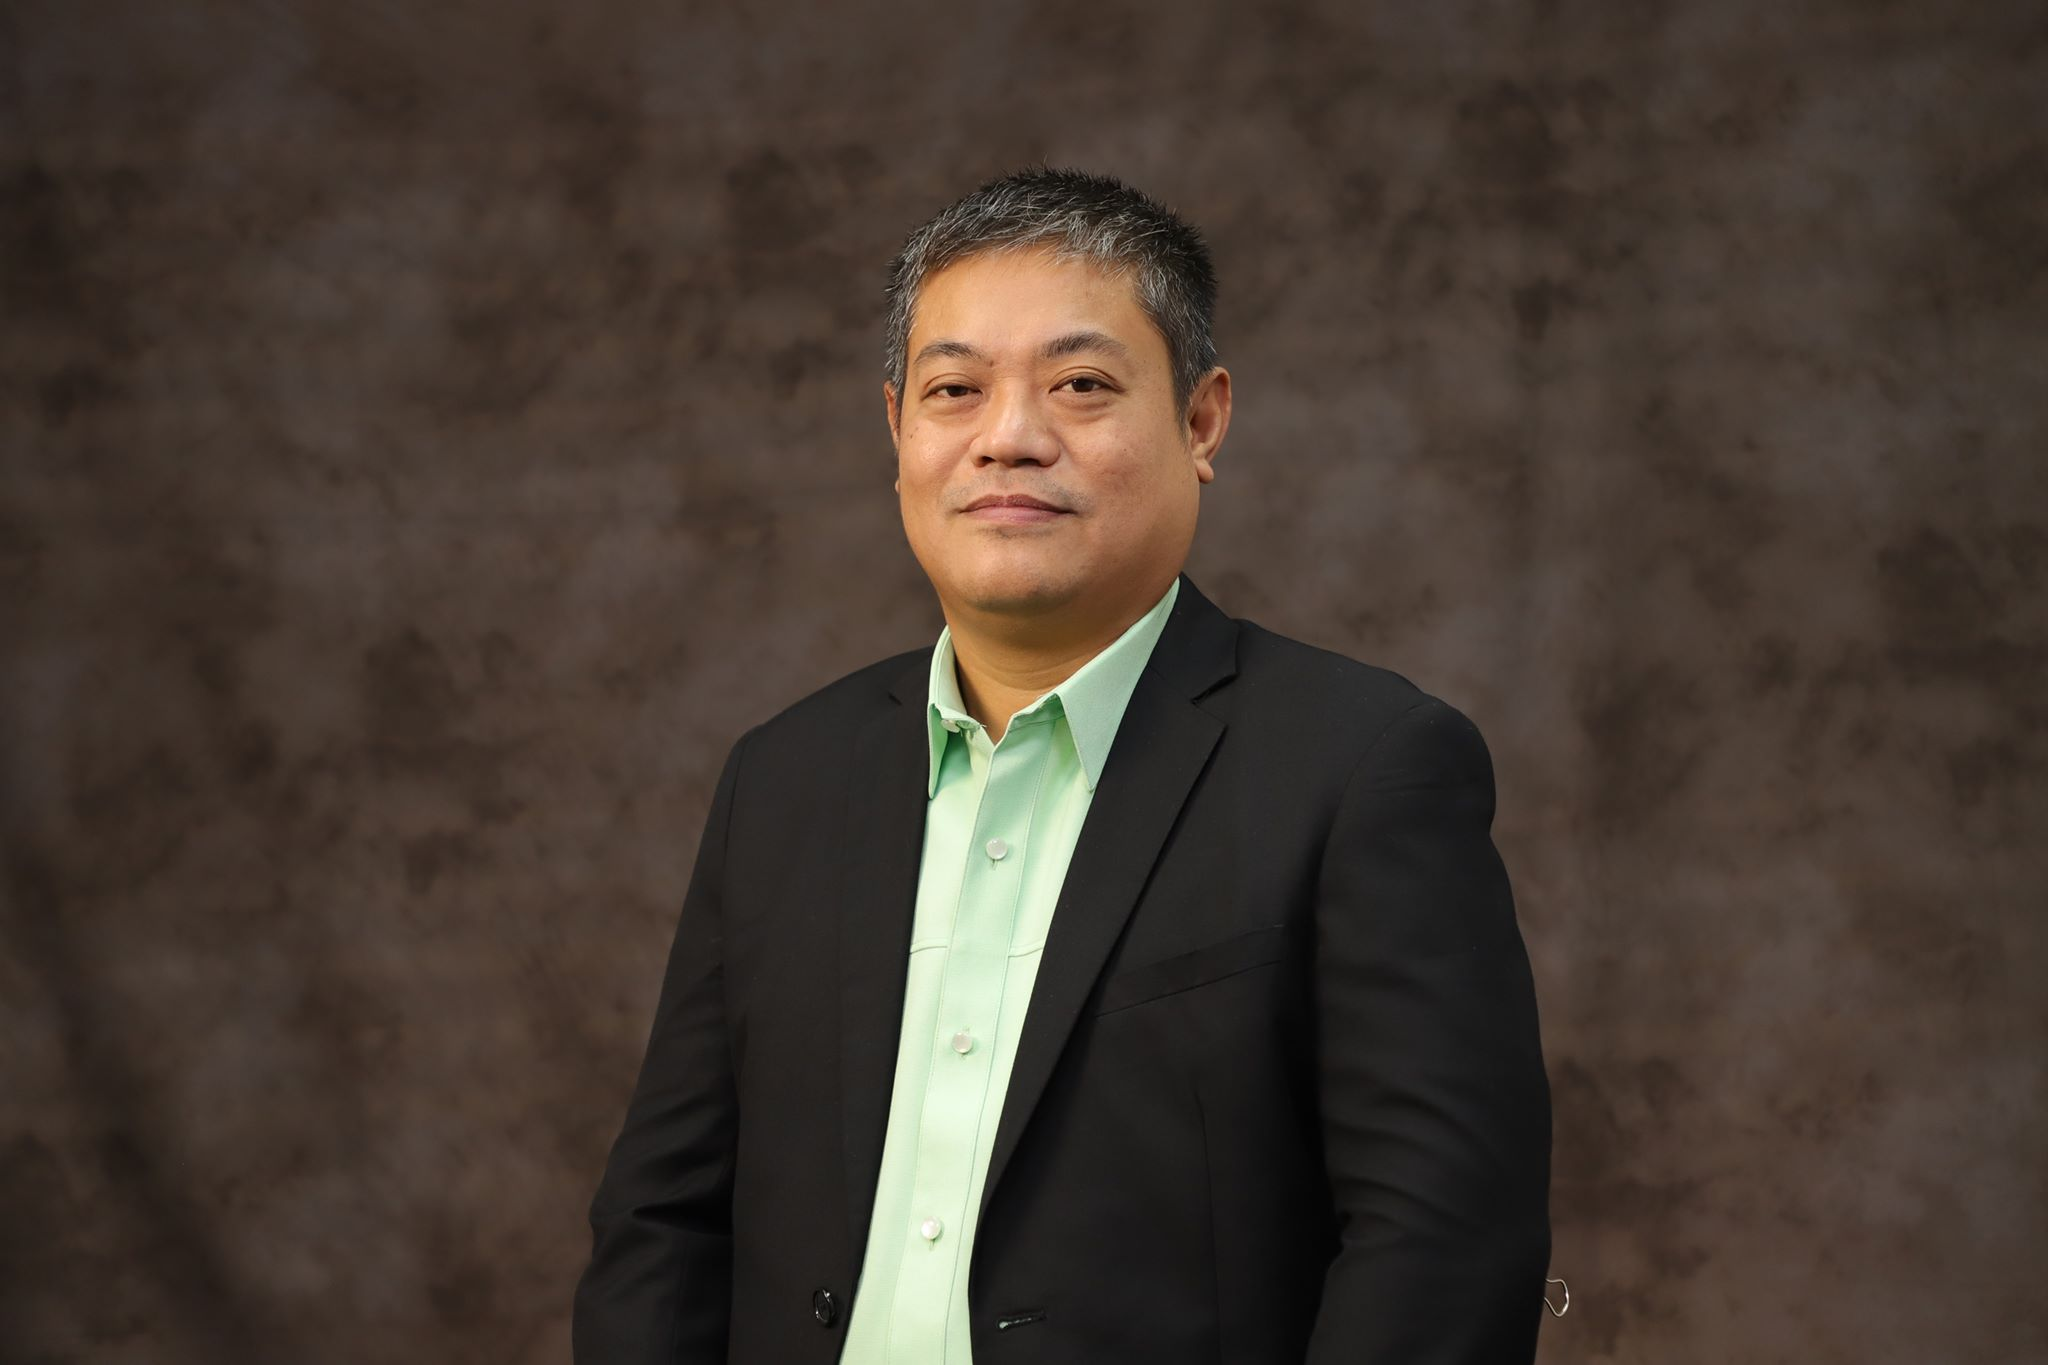 Malaysian Ministry appoints Criminal Justice's Dr. David to International Editorial Board